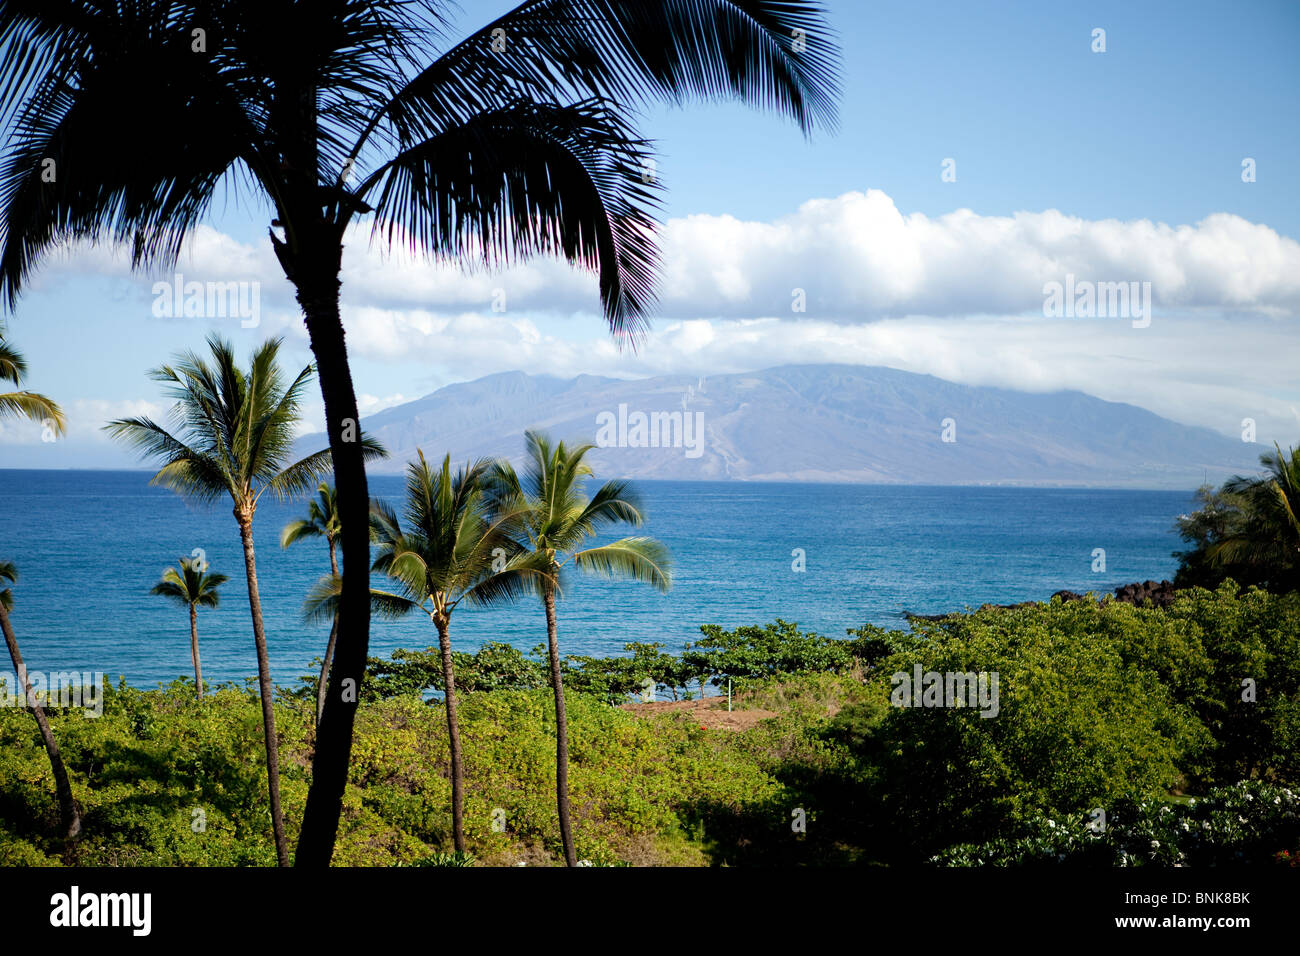 Hawaiian Landscape With Palm Trees And Blue Ocean And Sky On A